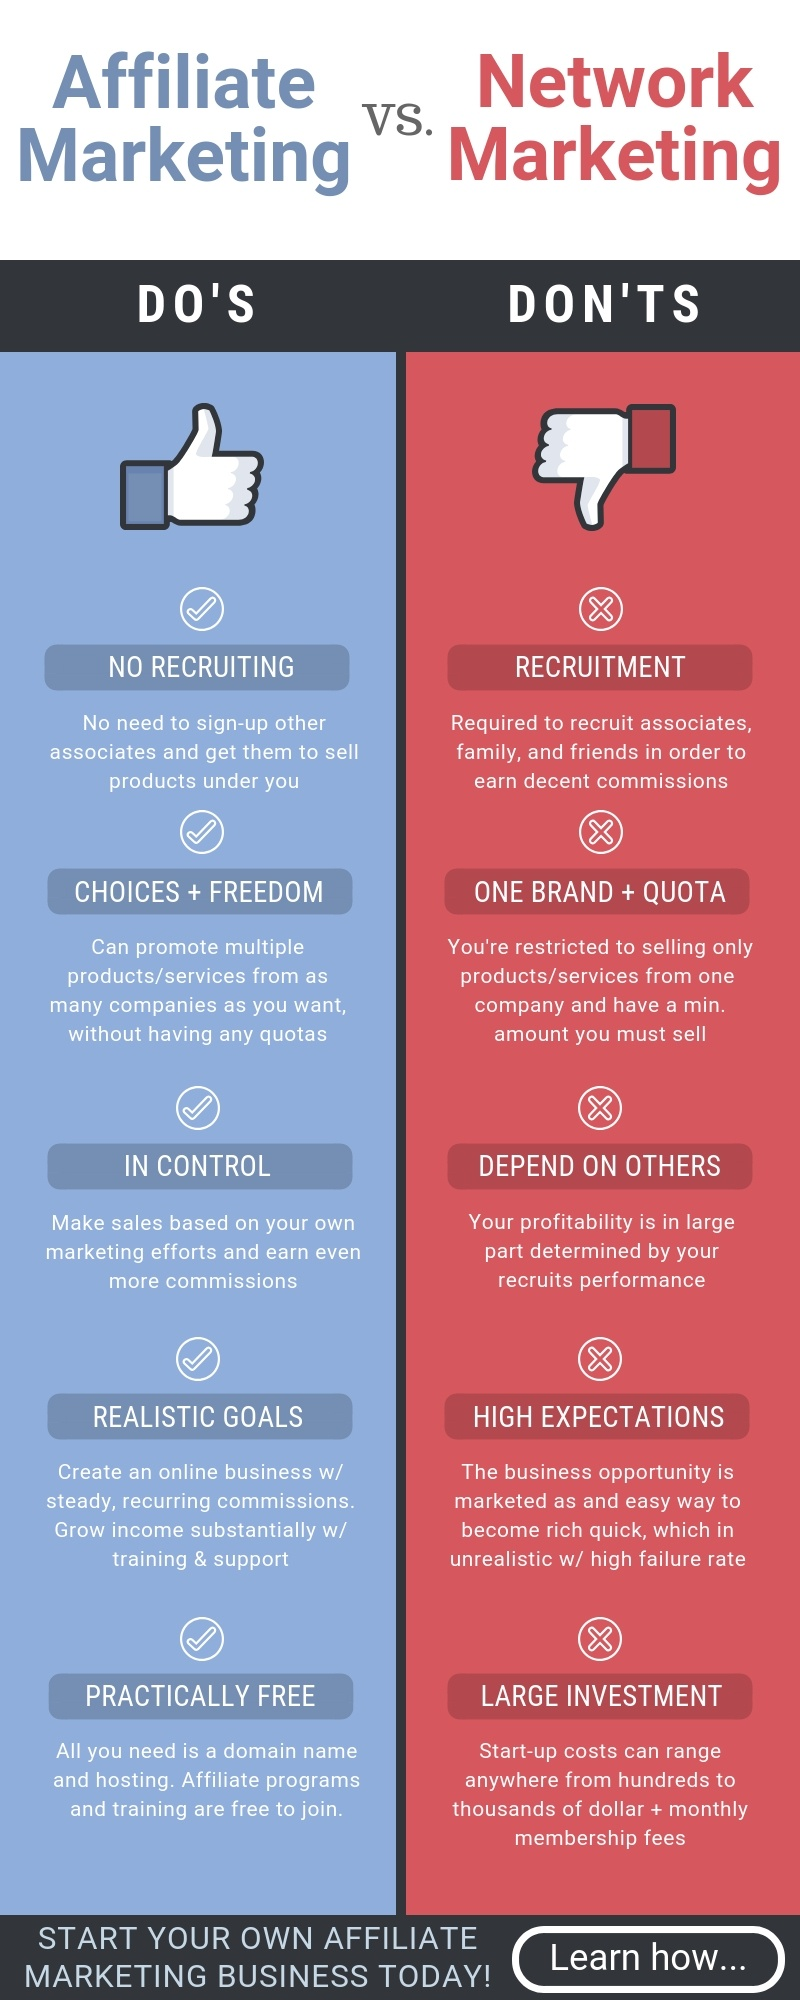 network marketing vs affiliate marketing pros cons infographic